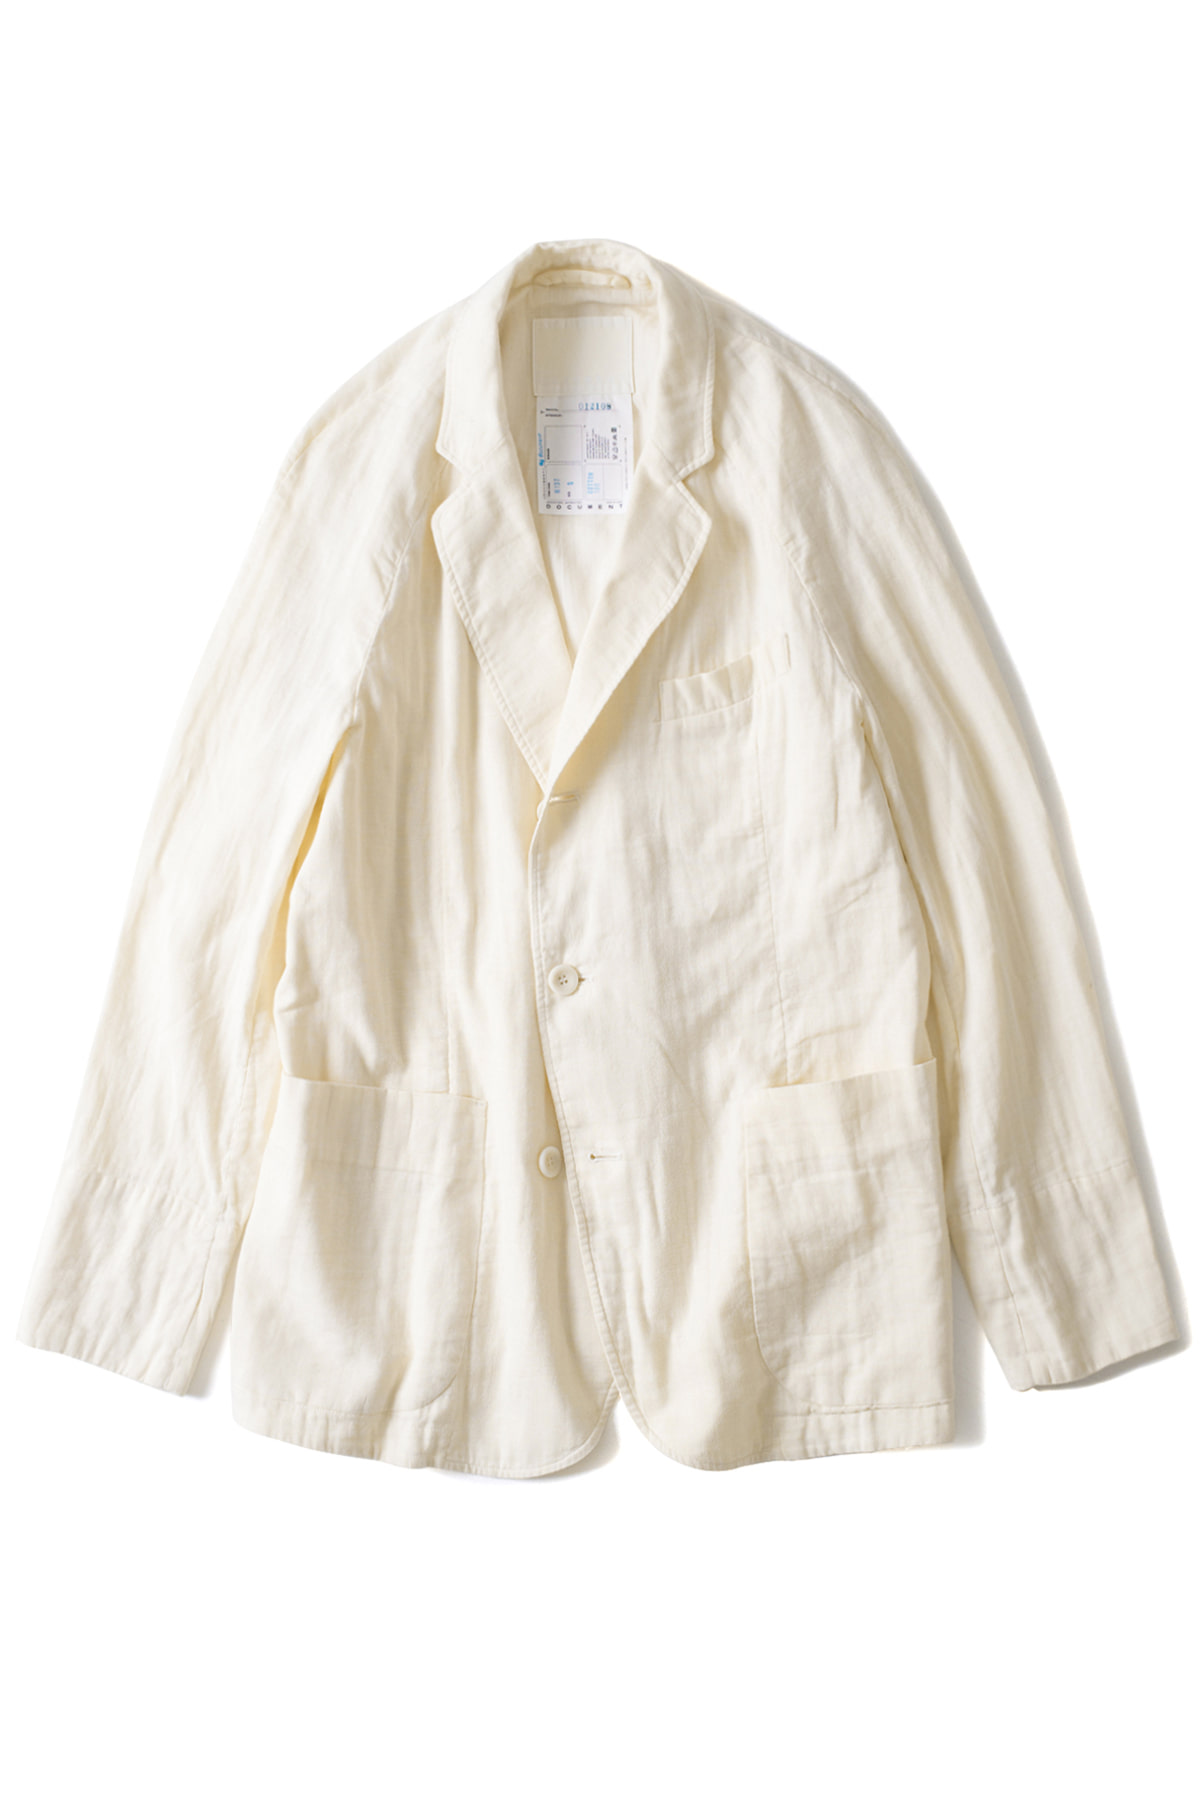 Document : M137 Raglan Jacket (LBeige)